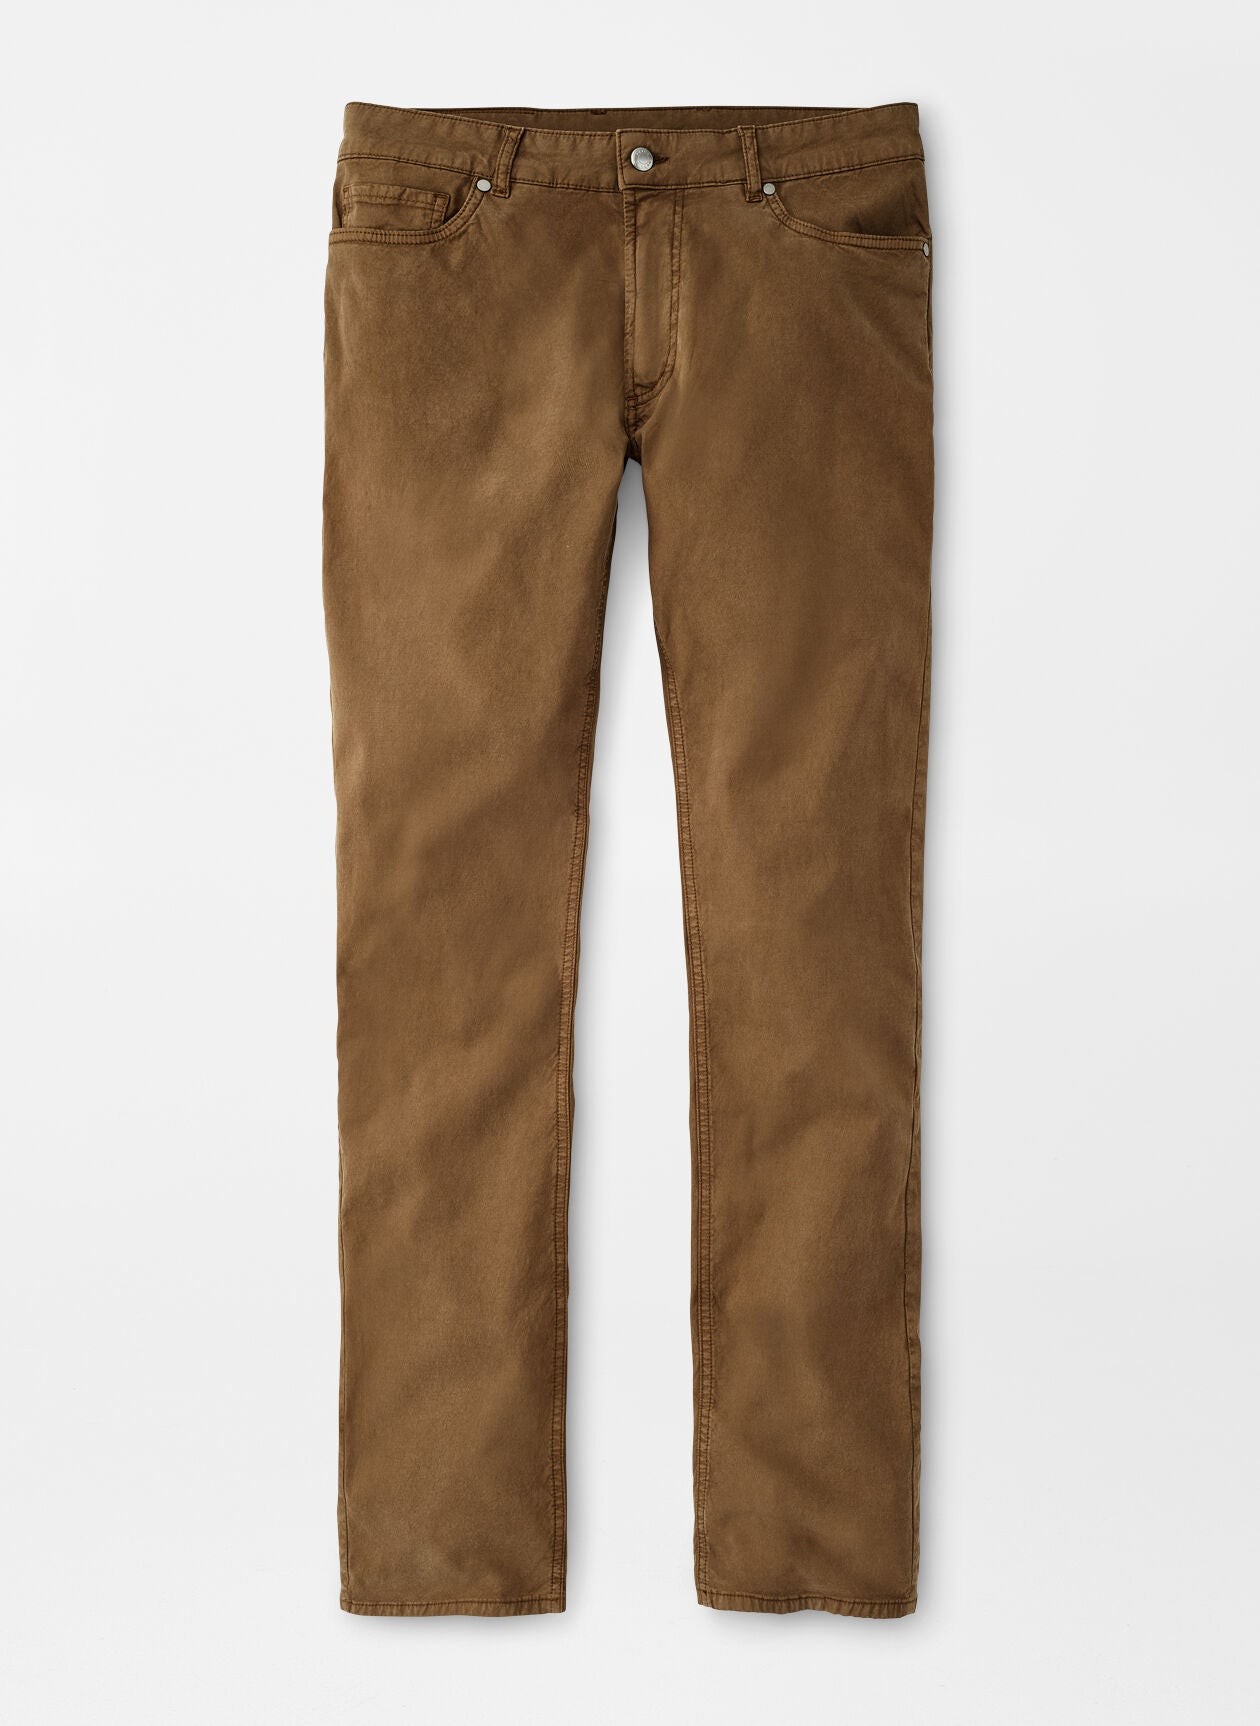 PETER MILLAR FIVE POCKET TROUSER - VICUNA